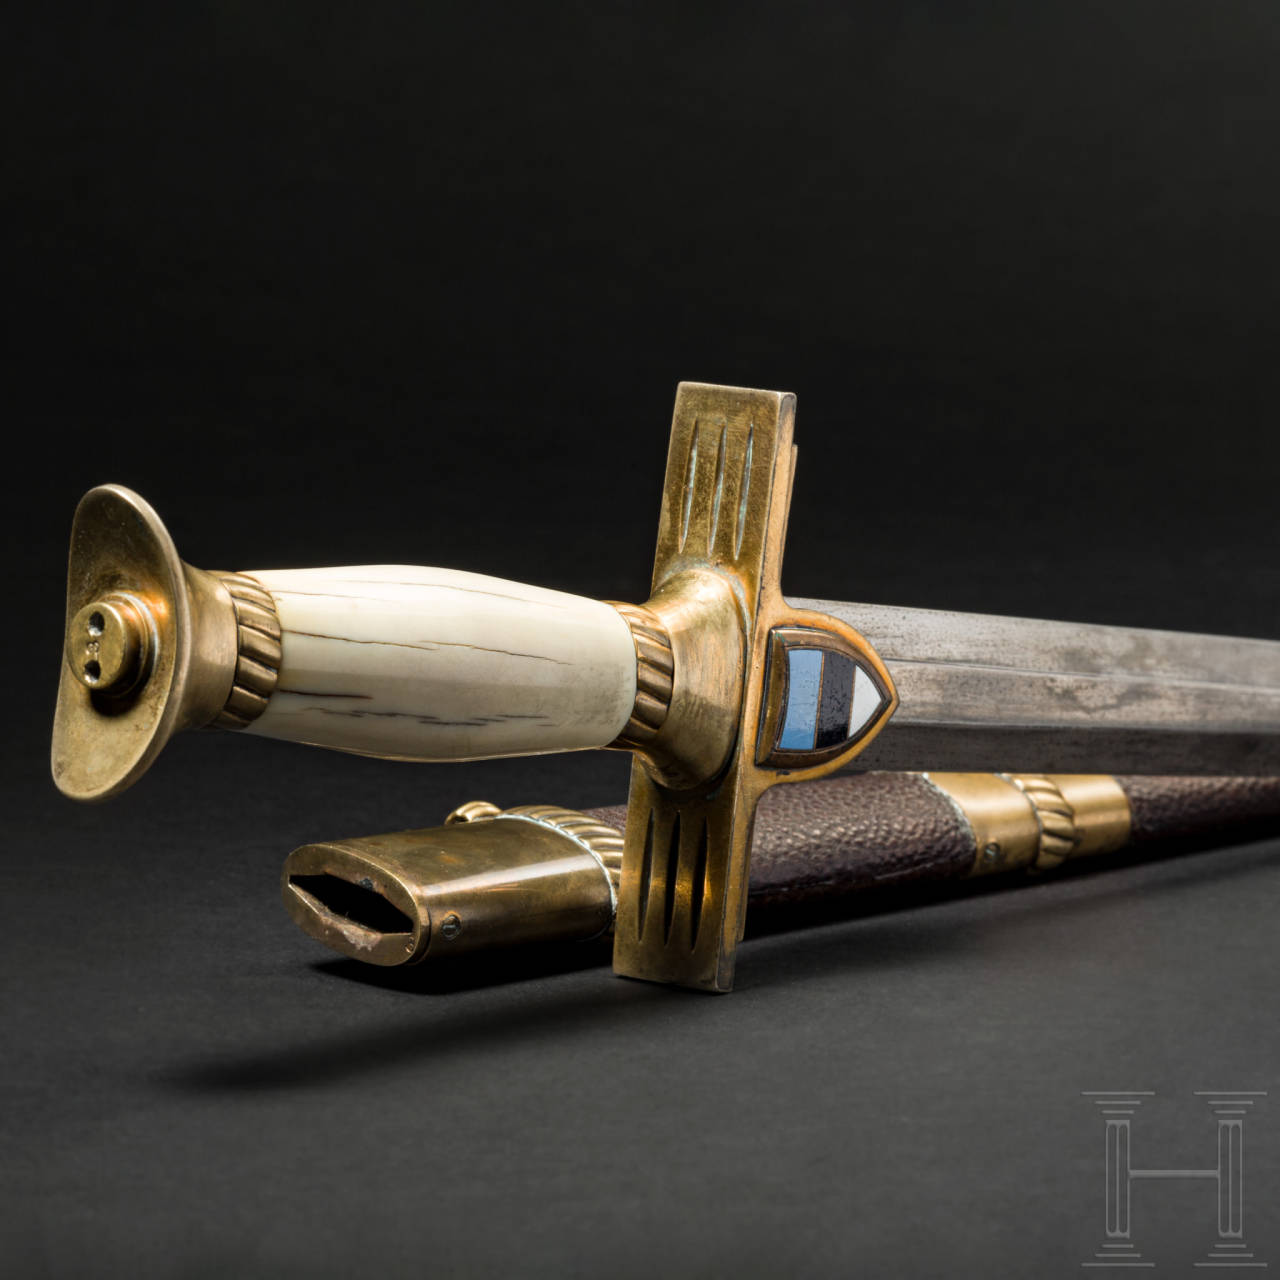 A dagger for officers of the army, with an ivory grip, 1920s/30s